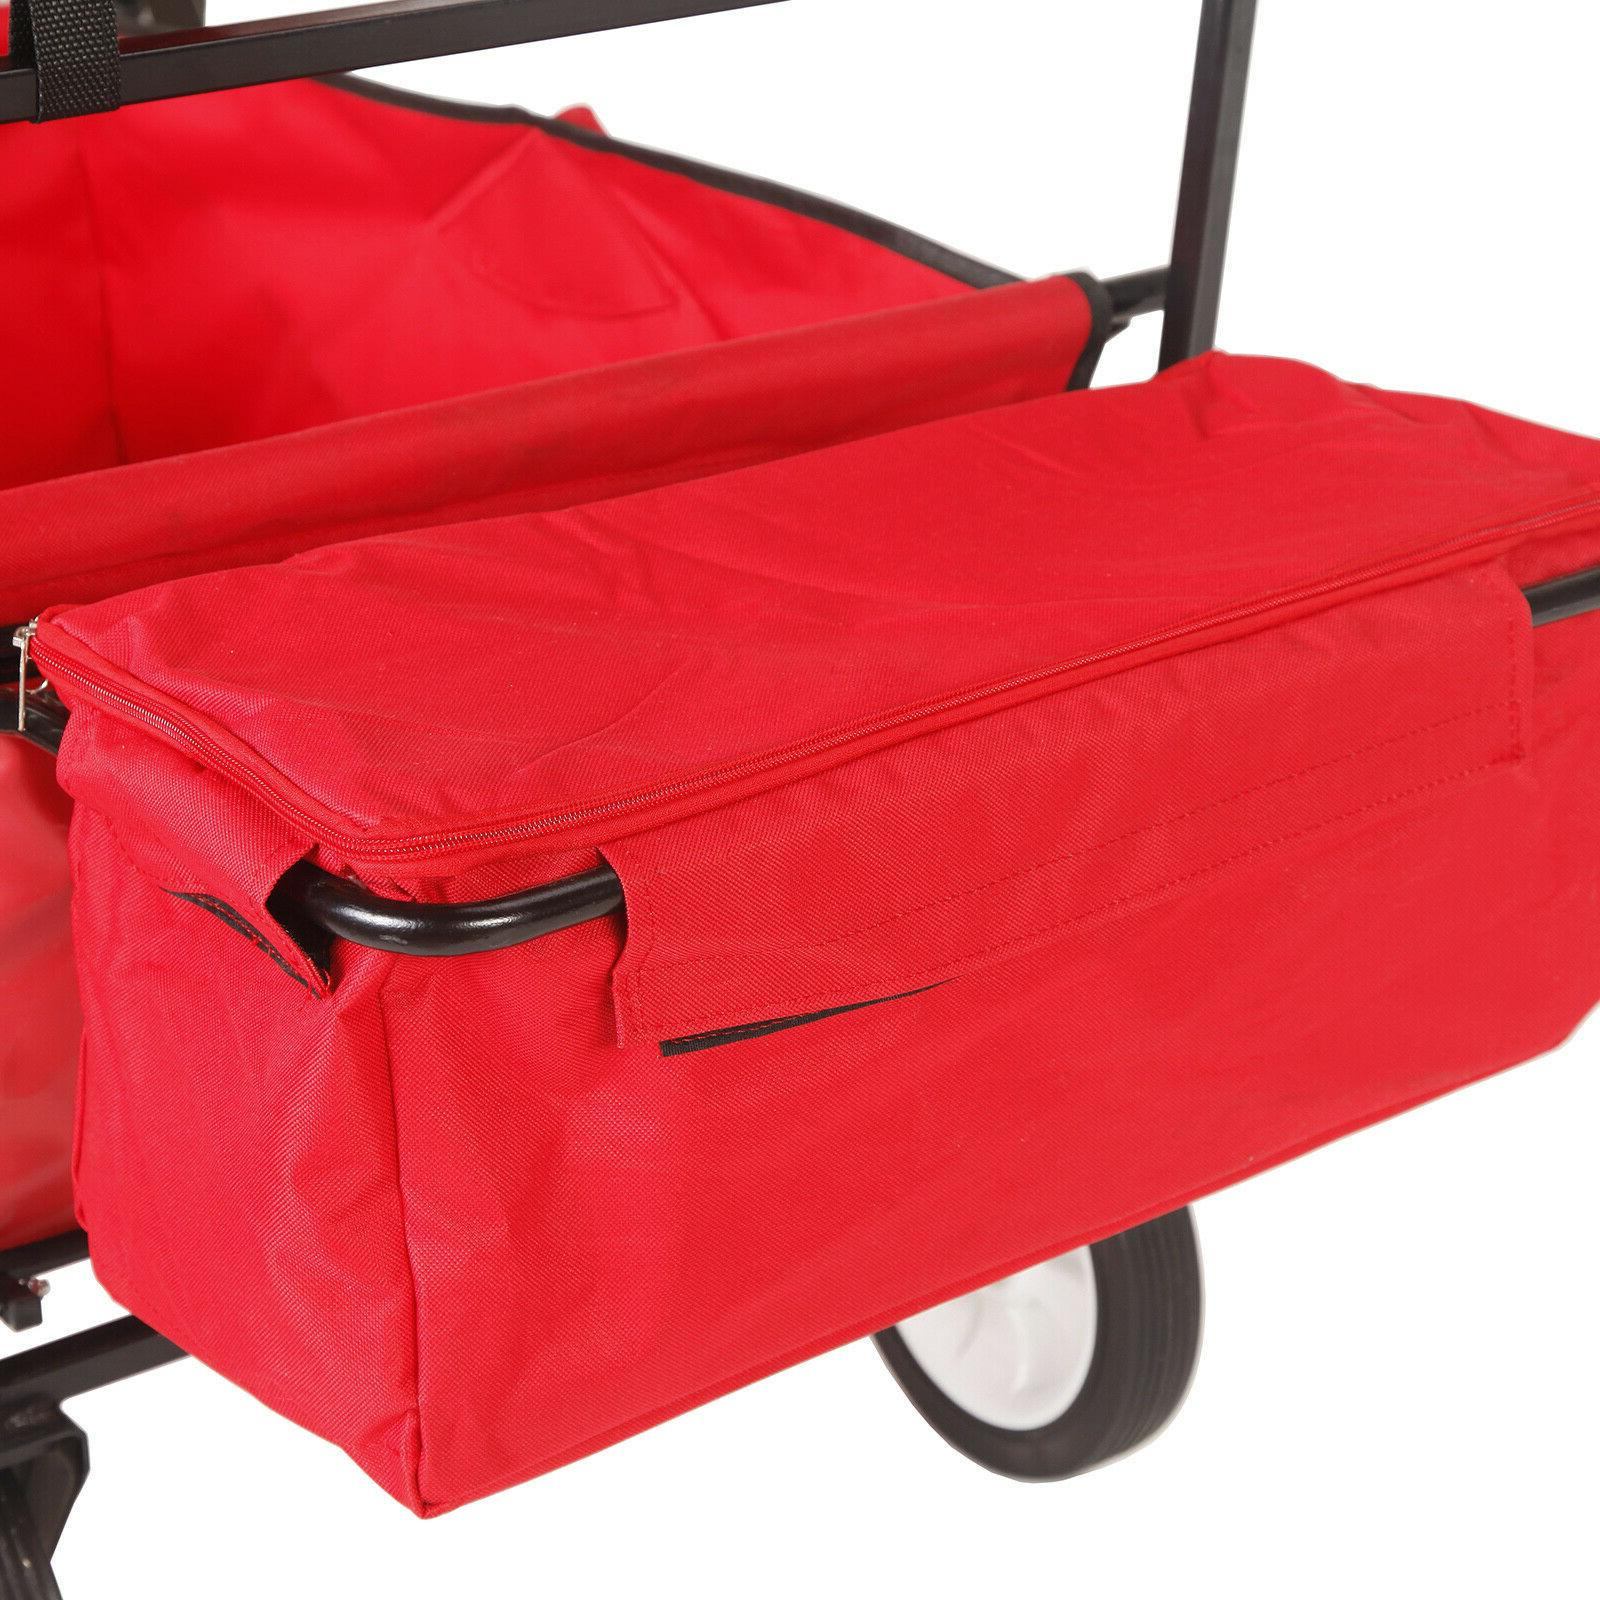 Collapsible Garden Camping Utility with Red